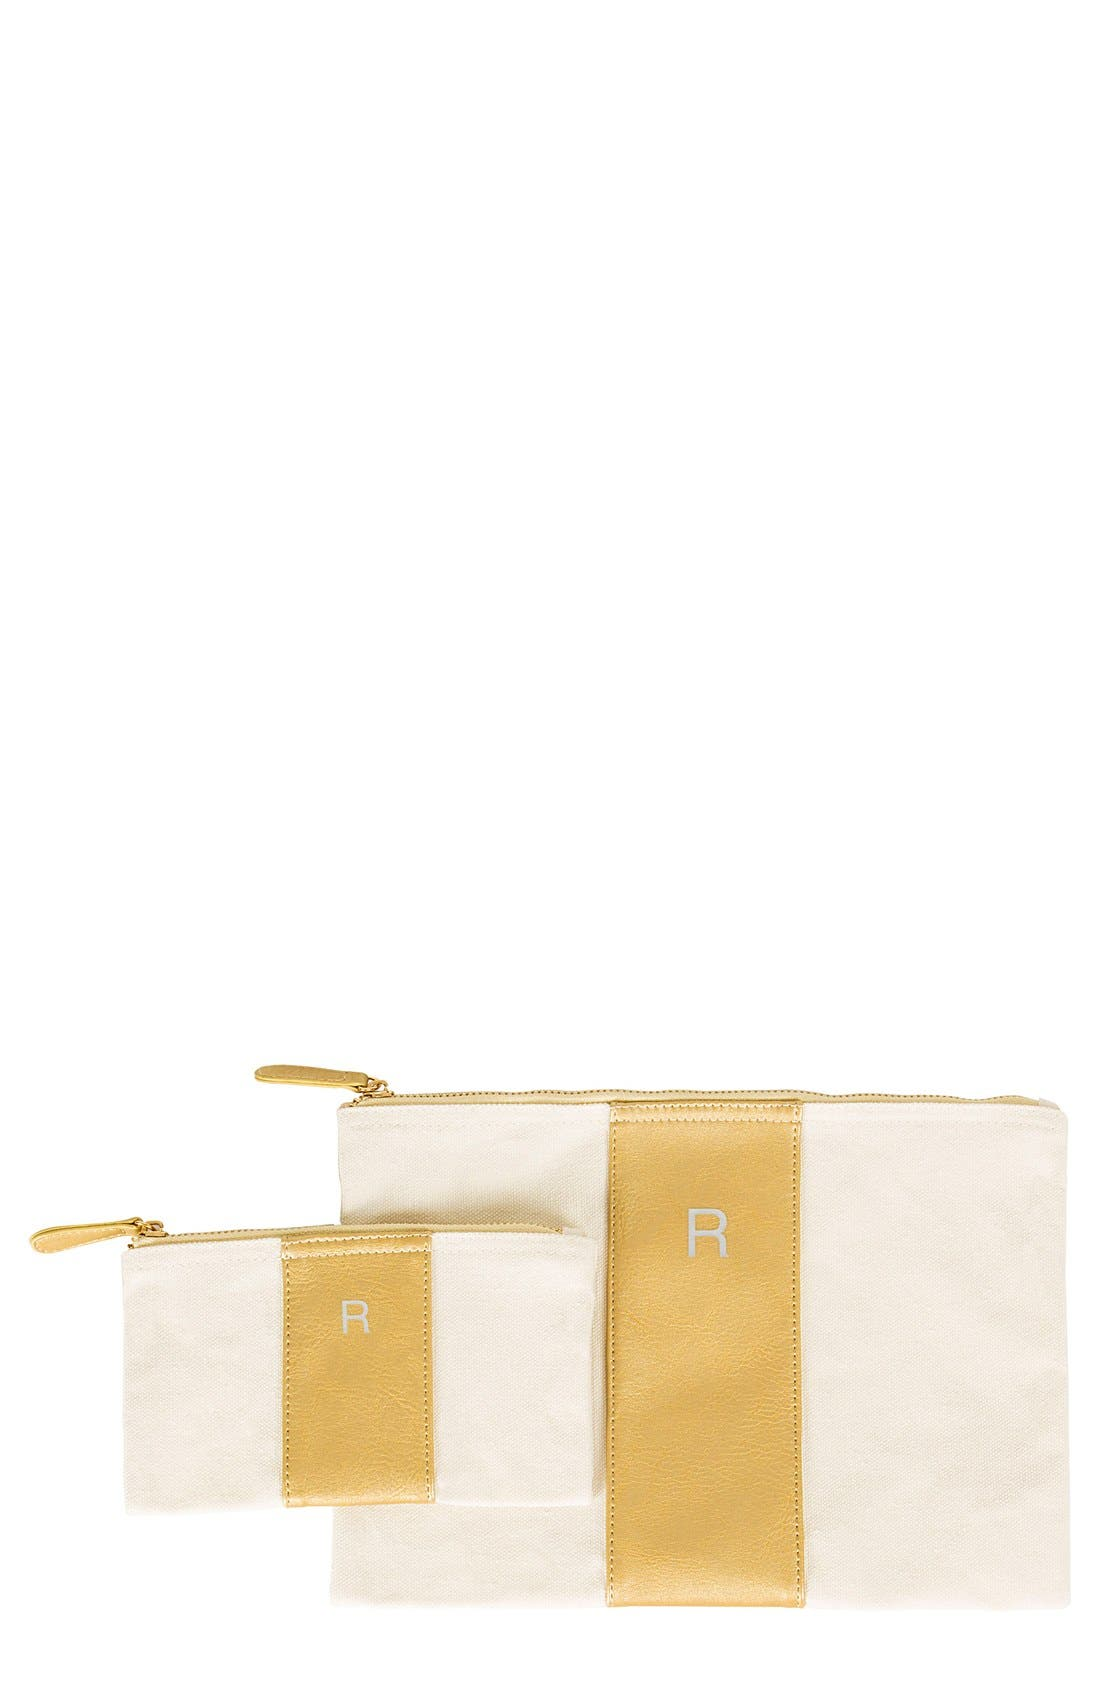 Personalized Faux Leather Clutch,                             Main thumbnail 36, color,